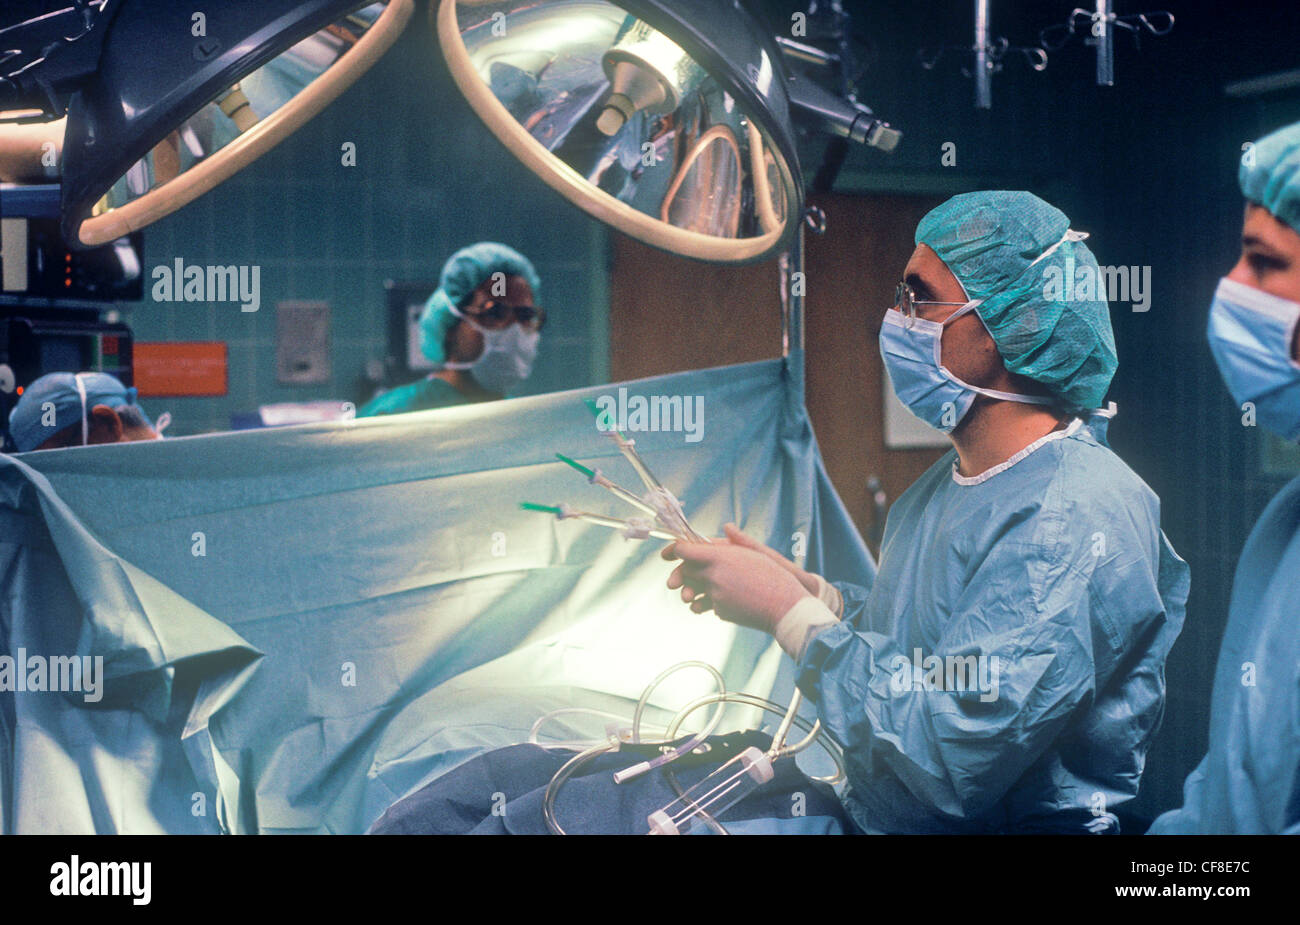 A surgeon performing surgery on a patient in the operating room. - Stock Image